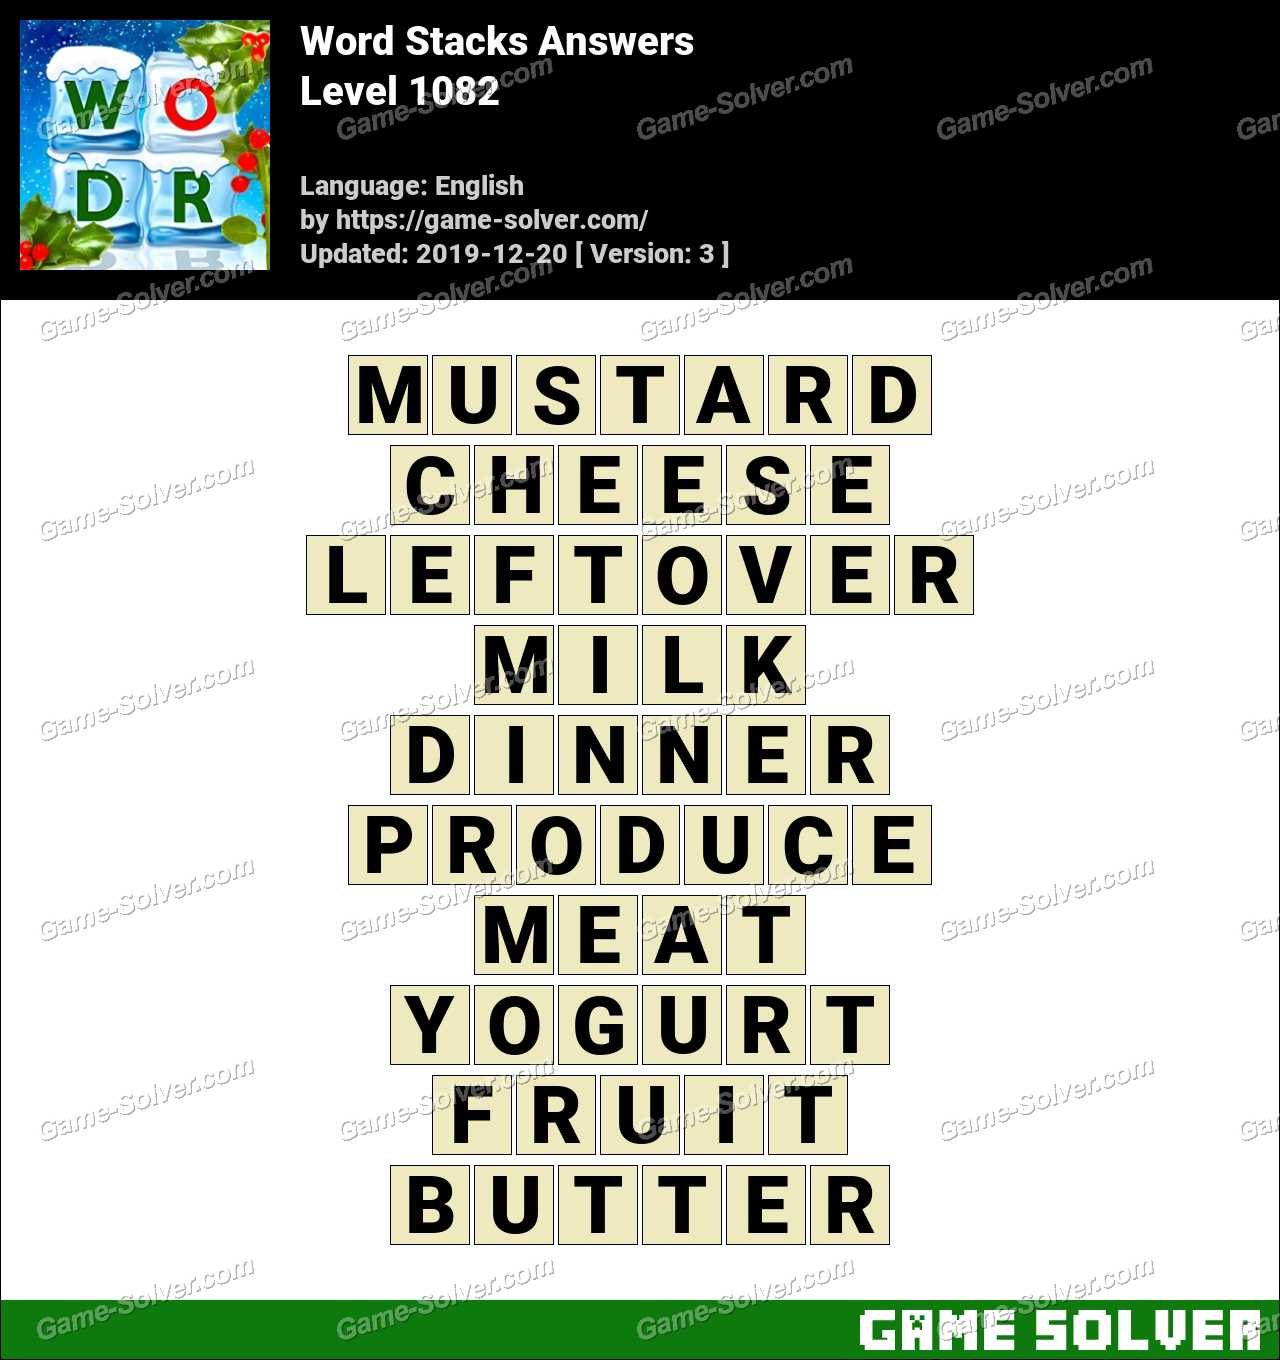 Word Stacks Level 1082 Answers